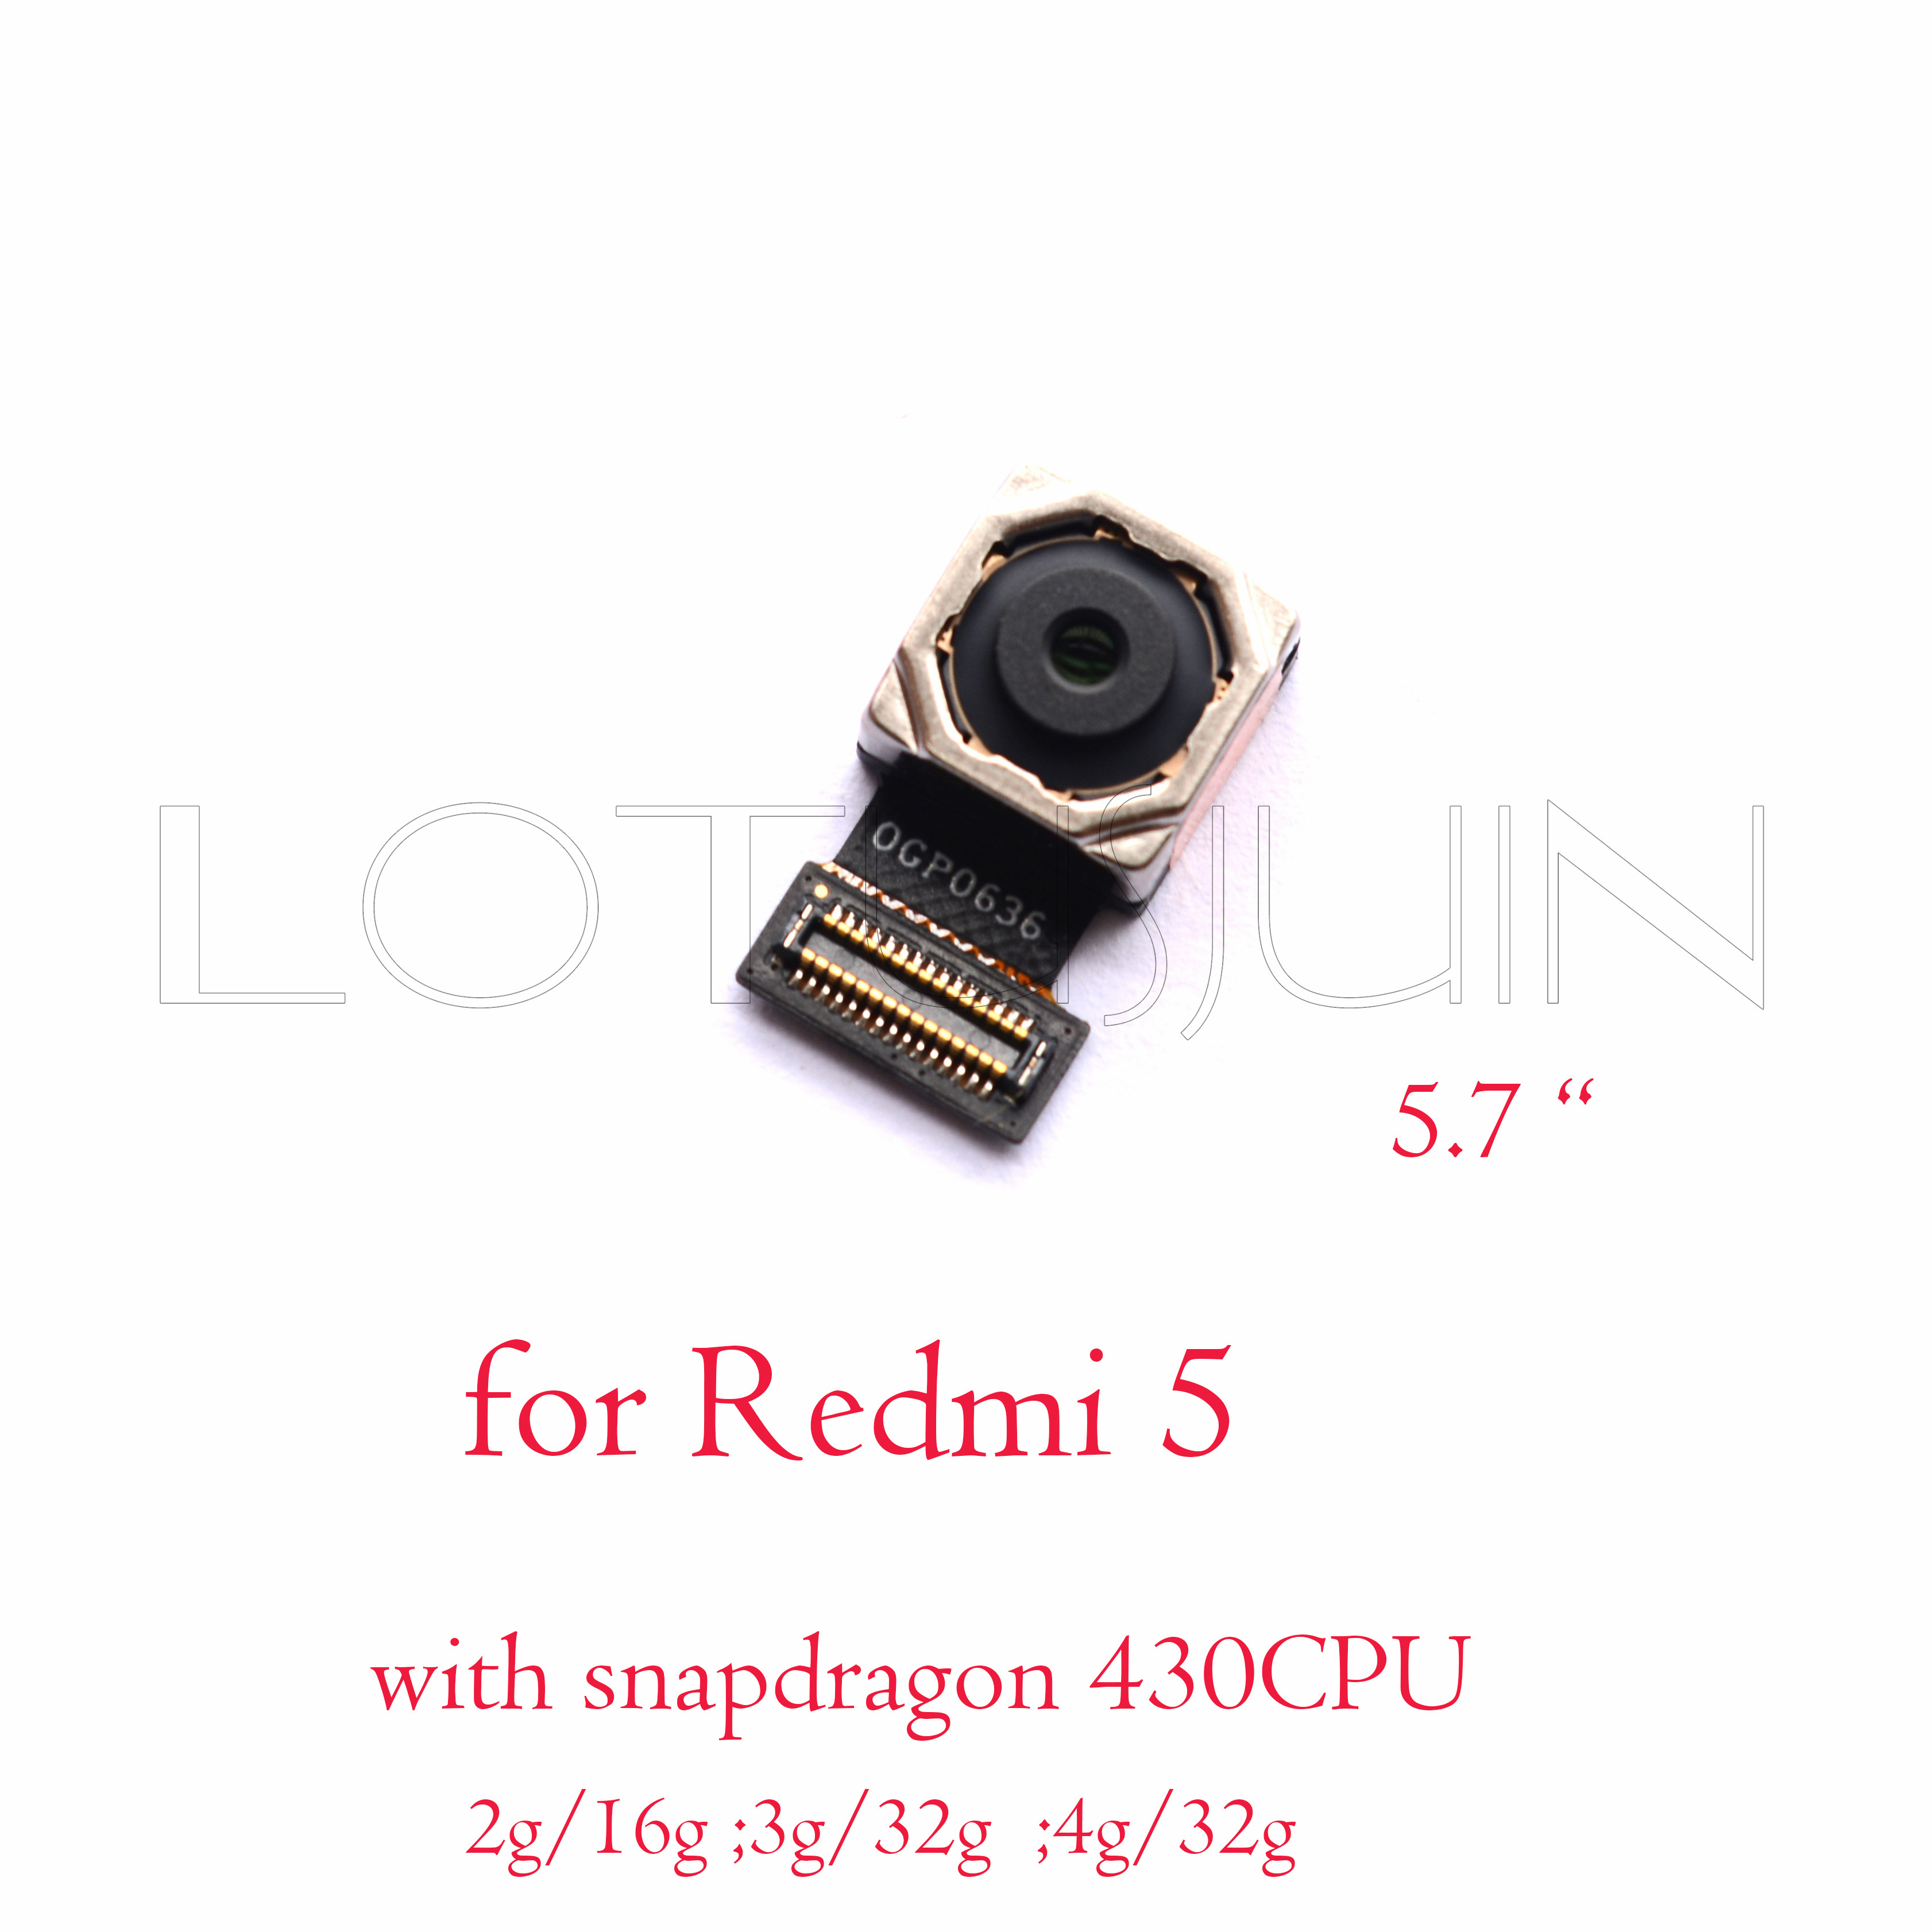 back rear camera for XIaomi Redmi 5 5A Redmi5 plus Redmi Note 5 5A Pro prime in Mobile Phone Flex Cables from Cellphones & Tele munications on